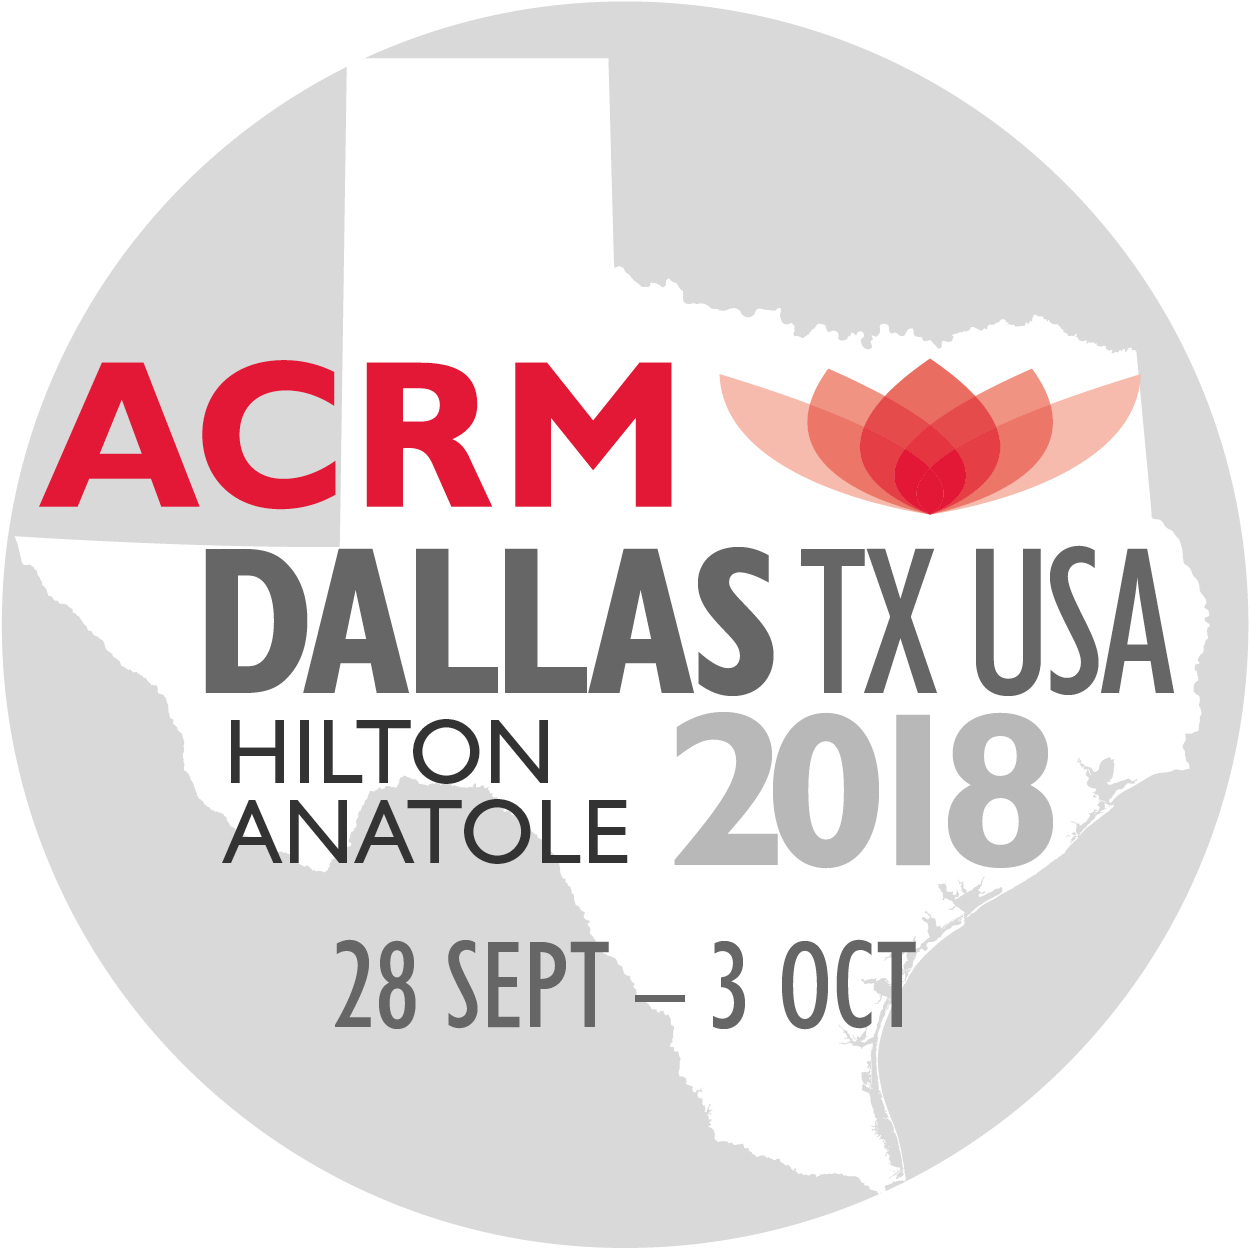 ACRM 2018 TEXAS full date range 28 SEPT - 3 OCT